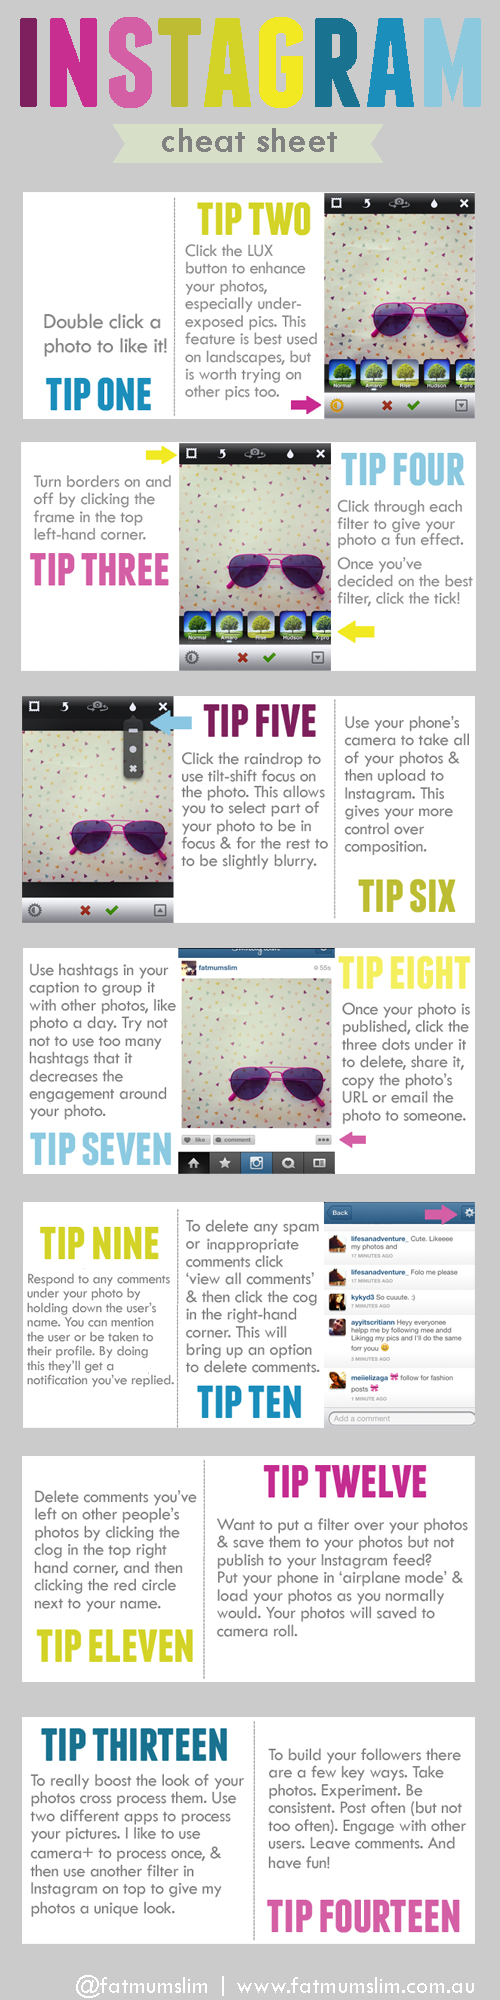 Instagram How to CheatSheet by http://fatmumslim.com.au